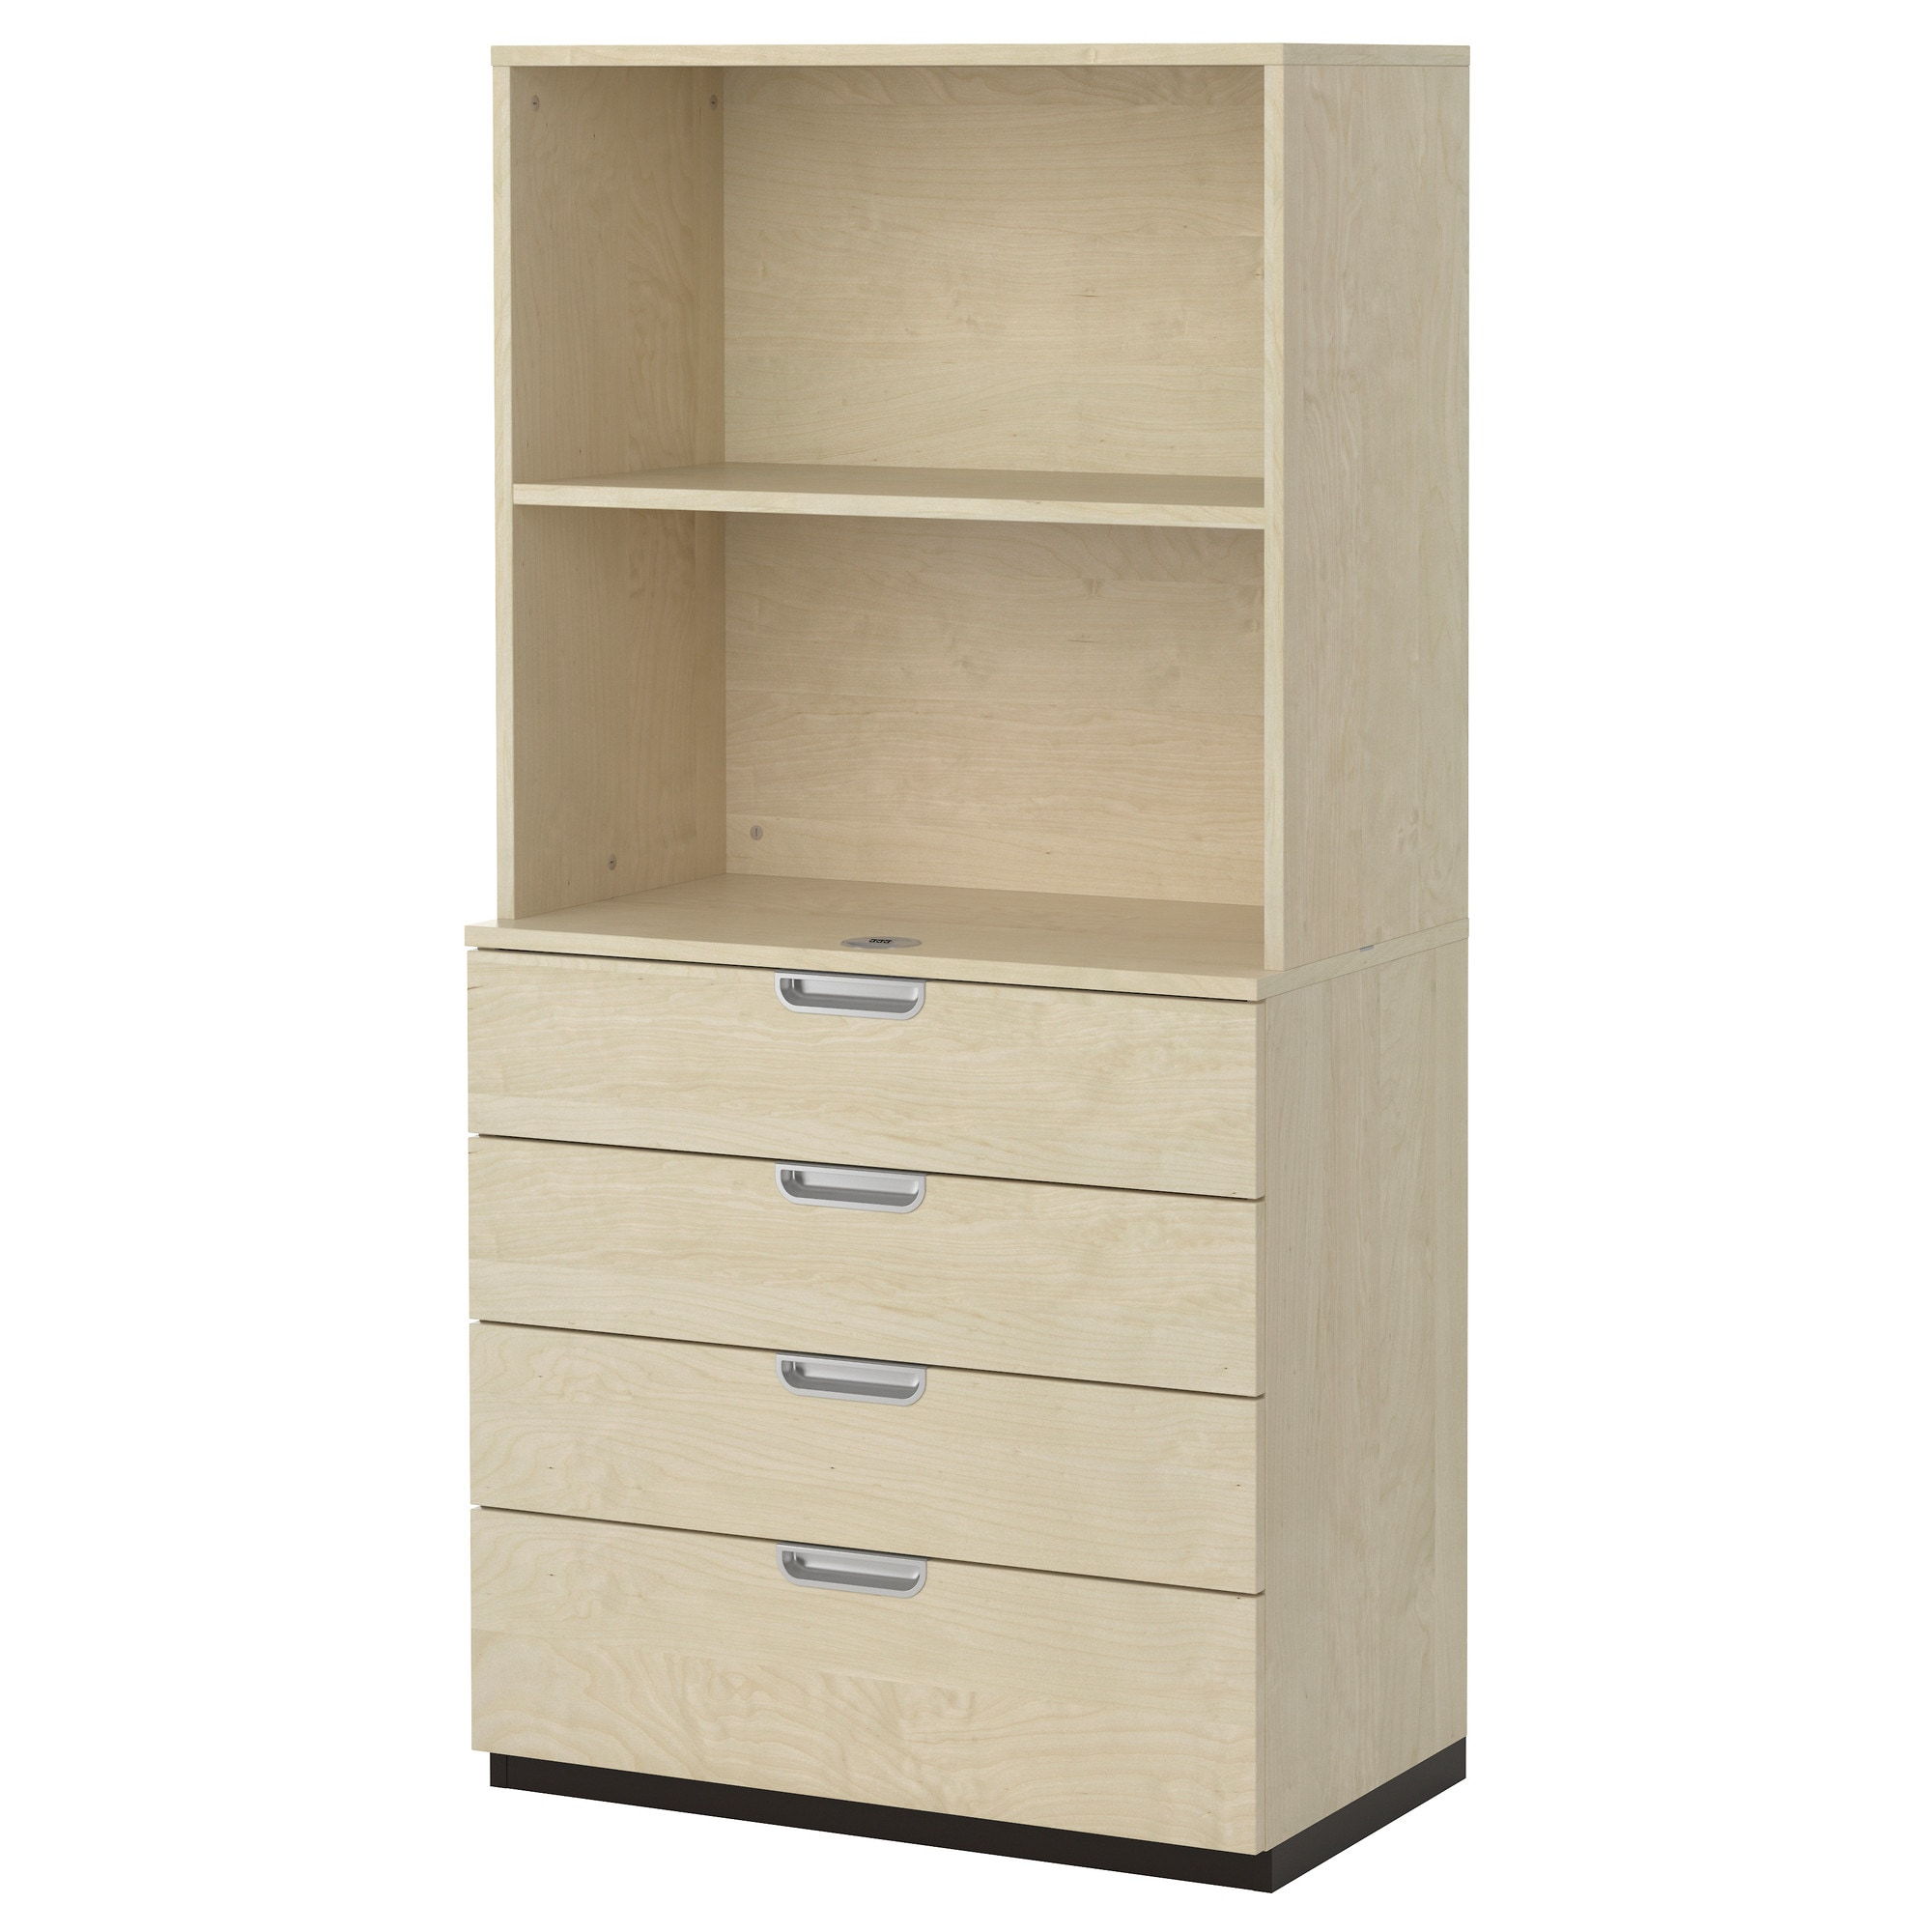 Office Max Filing Cabinet Office Storage Drawer Units Galant Bekant System Ikea